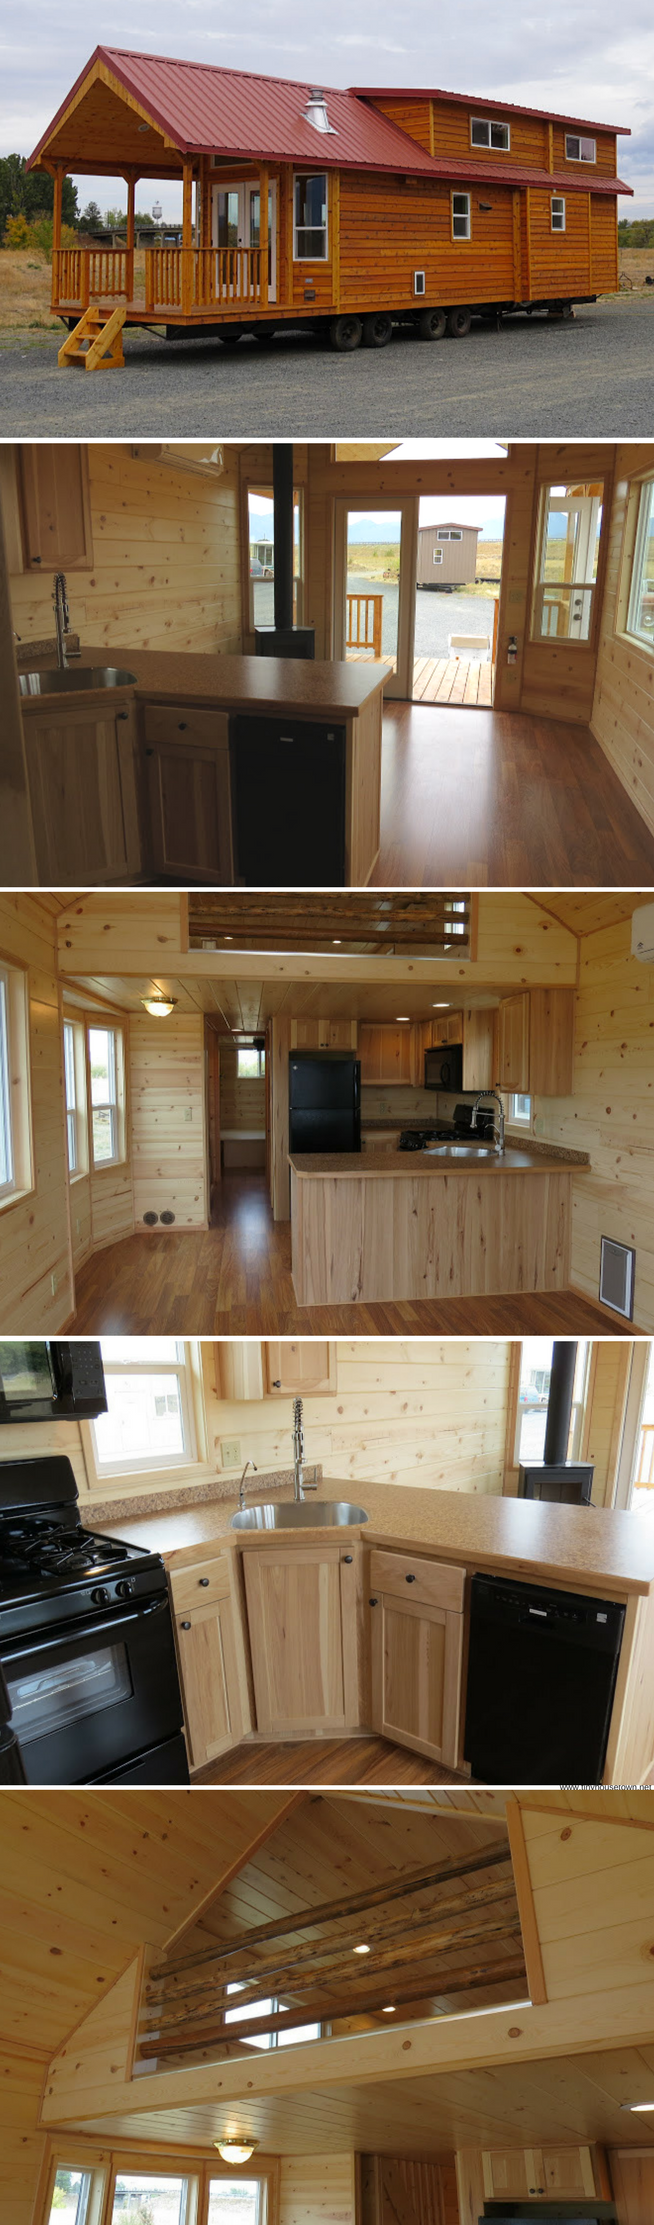 Tiny house living classic double loft  two bedroom park model cabi also cabin rh pinterest